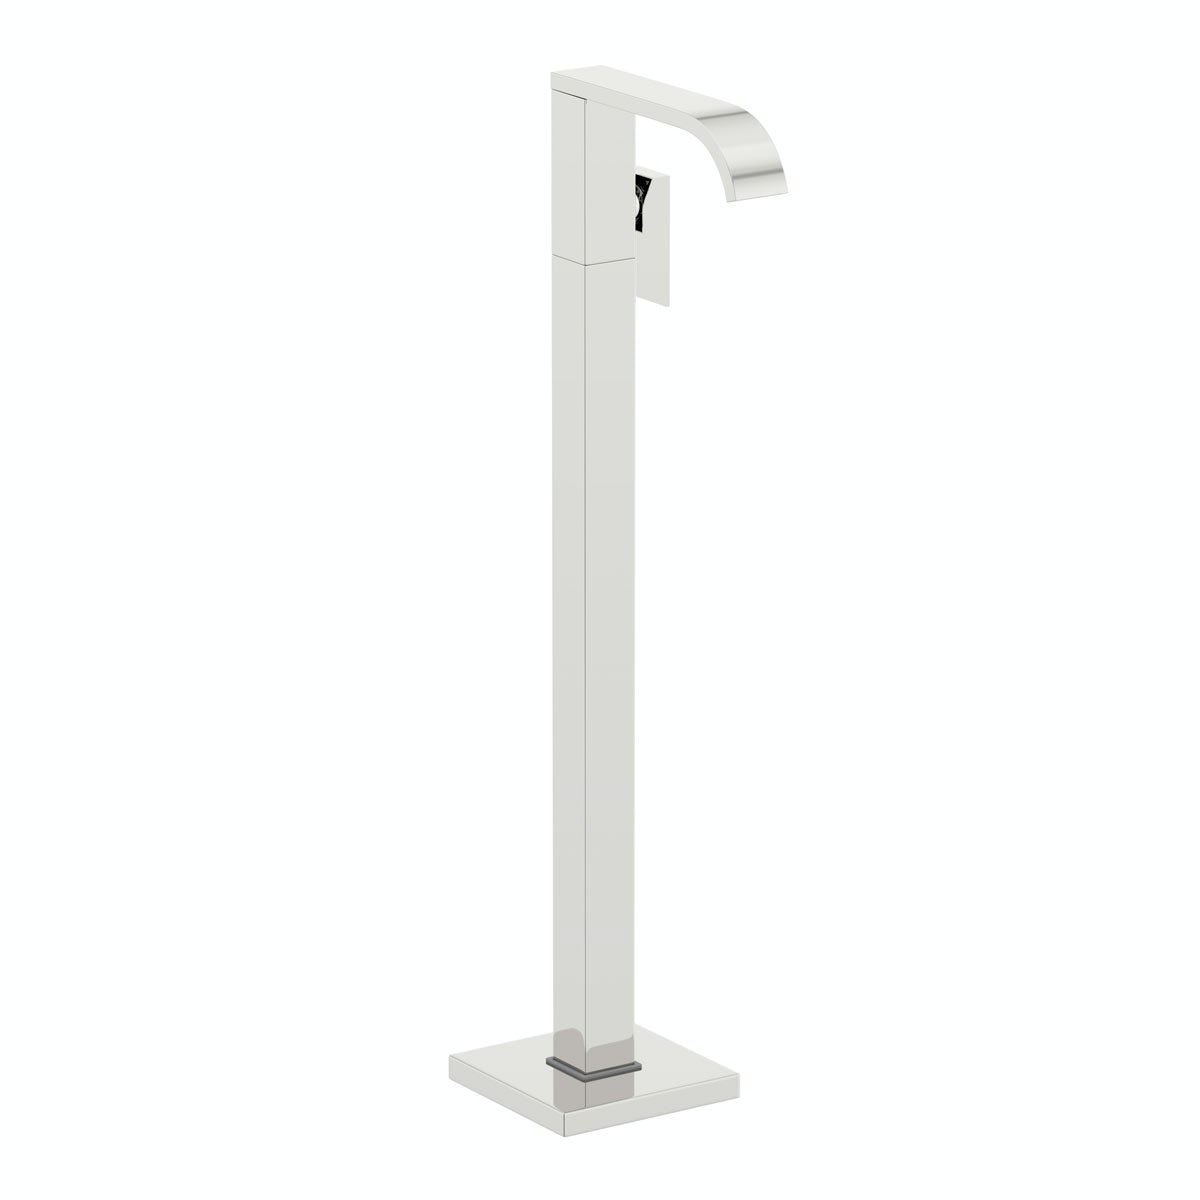 Mode Austin freestanding bath filler tap